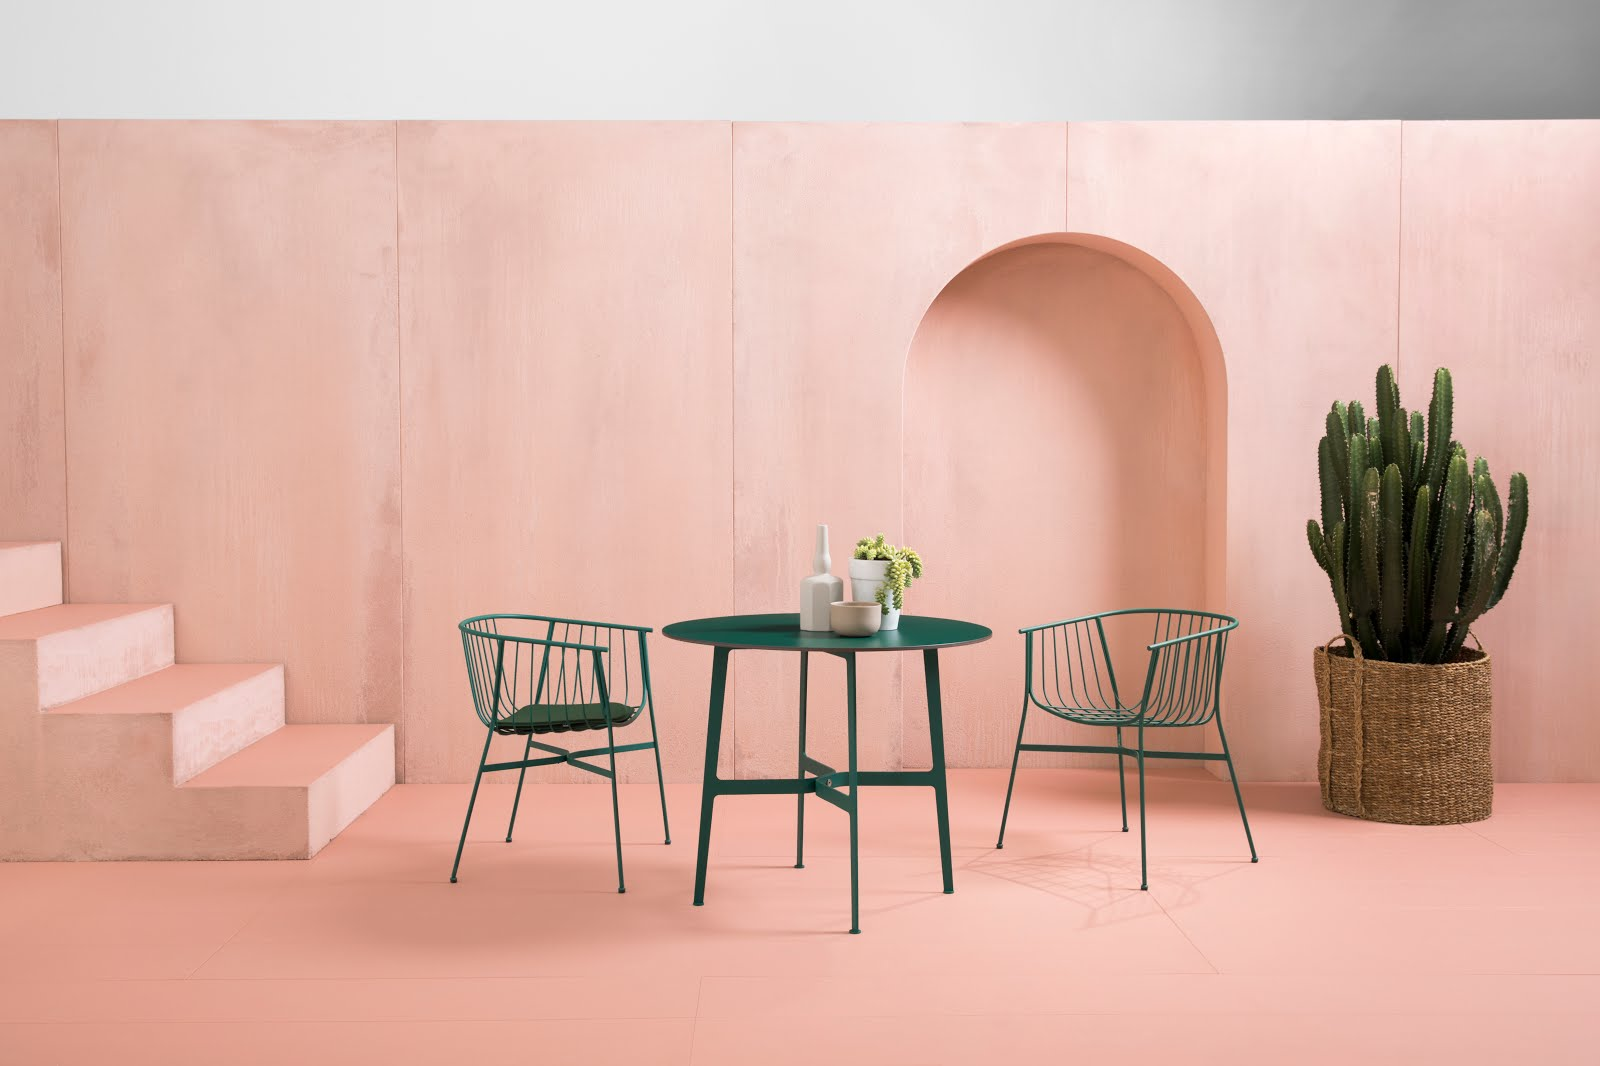 Copper Blush, stockholm furniture fair, colour trend, hello peagreen, interiors blogger